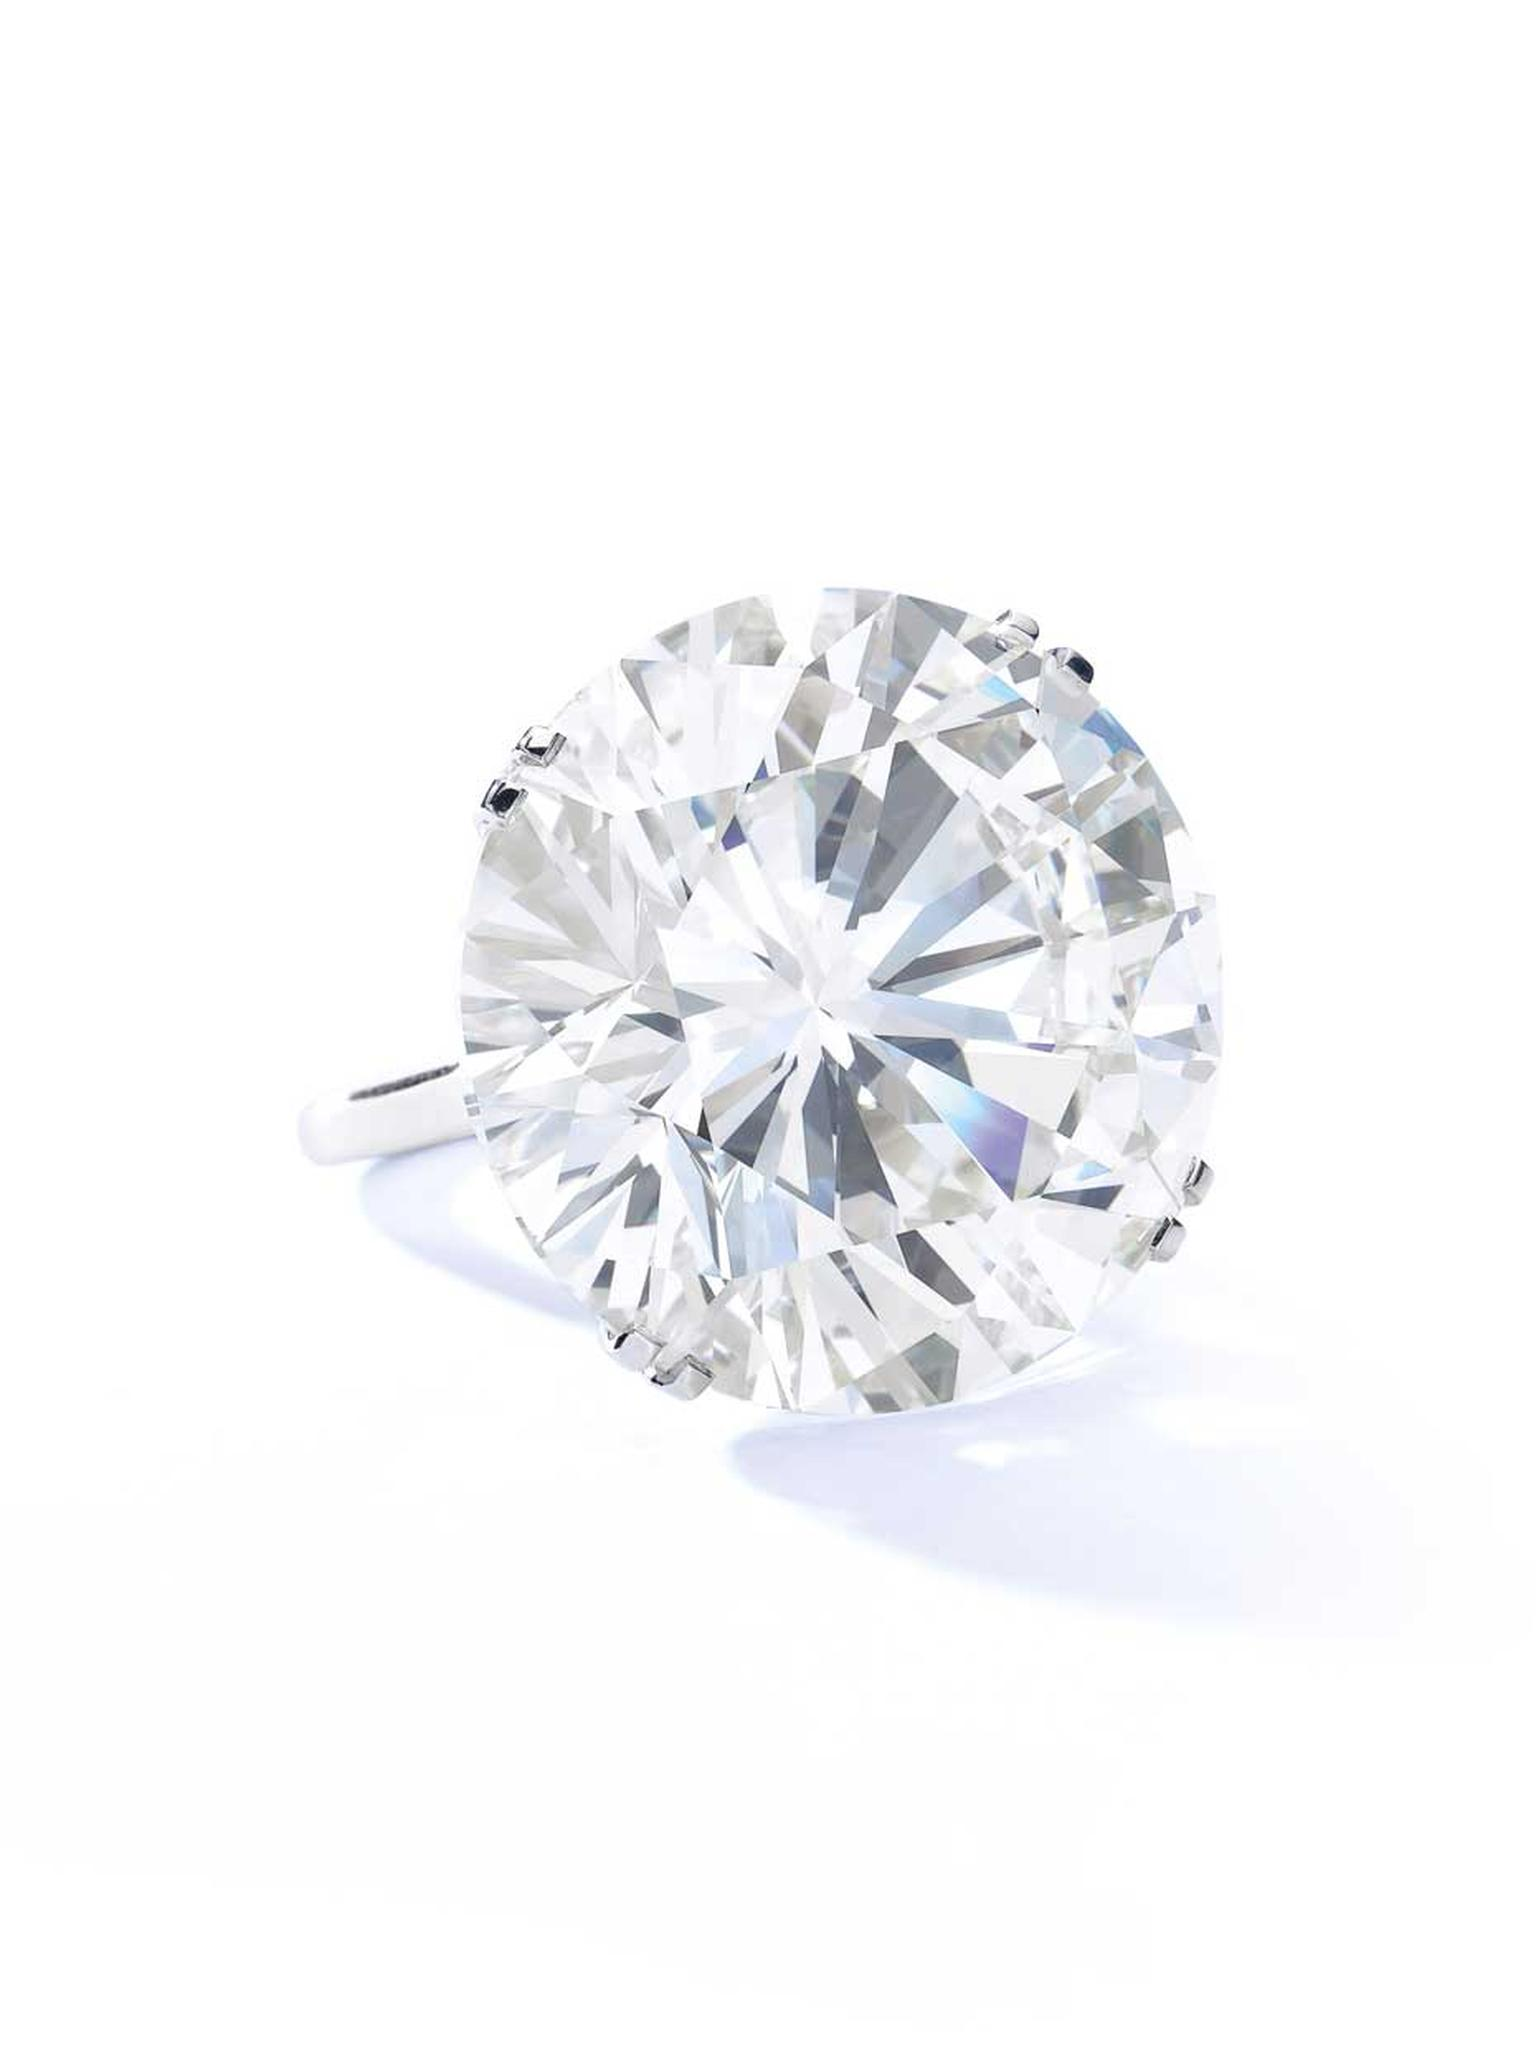 Graff 103.46ct diamond ring. Sold for CHF 4,309,000 (estimate: CHF 3,200,00 - 4,460,000)